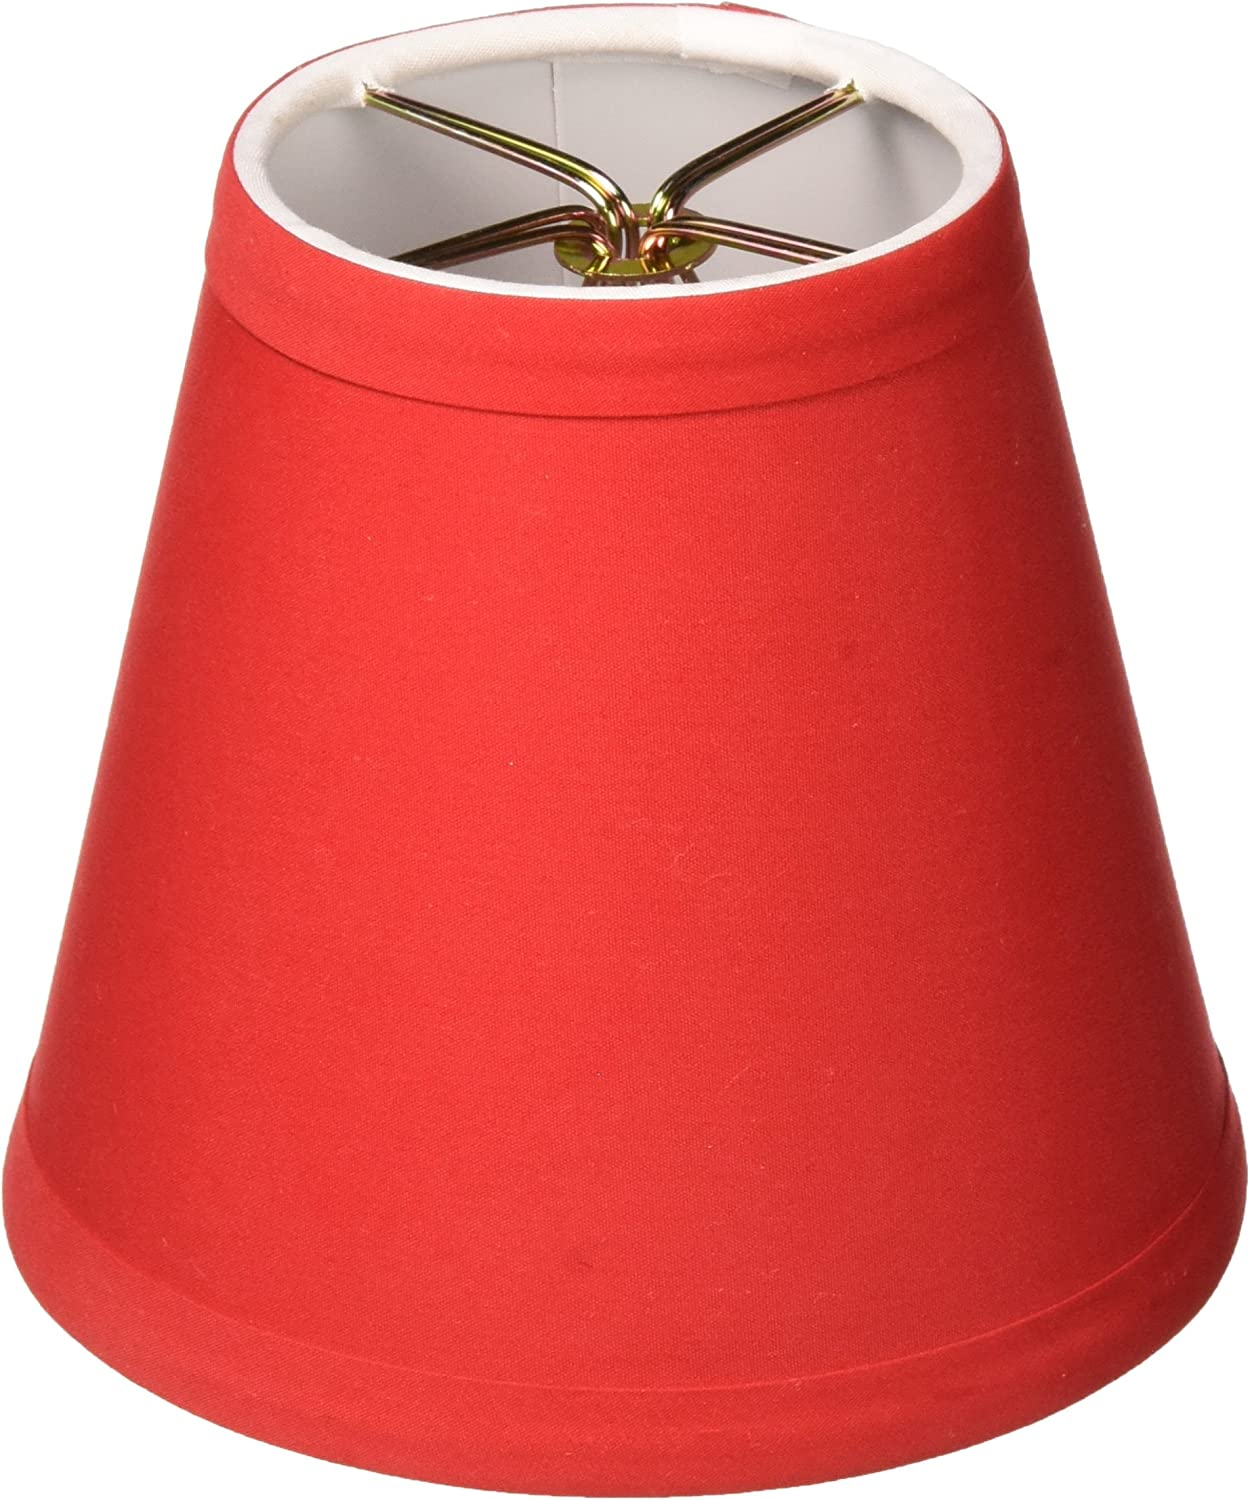 Royal Designs Cs 1002 5red 6 Clip On Empire Chandelier Lamp Shade 3 X 5 X 4 5 Red Set Of 6 Amazon Com